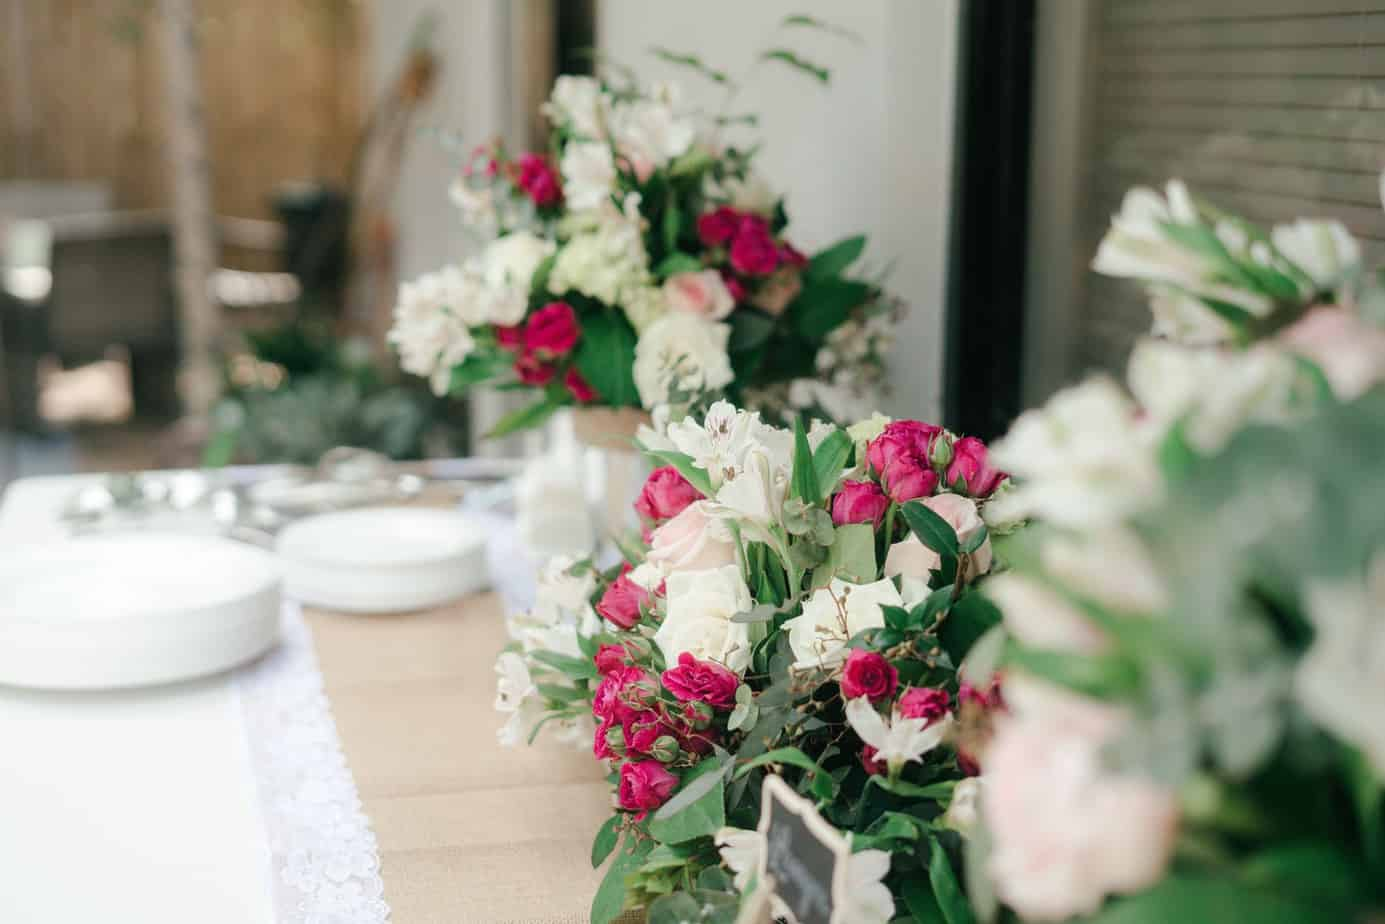 Unique Engagement Party Theme Ideas For Your Big Day : Check These Best Tips For Burgundy Wedding Decorations  (2021)